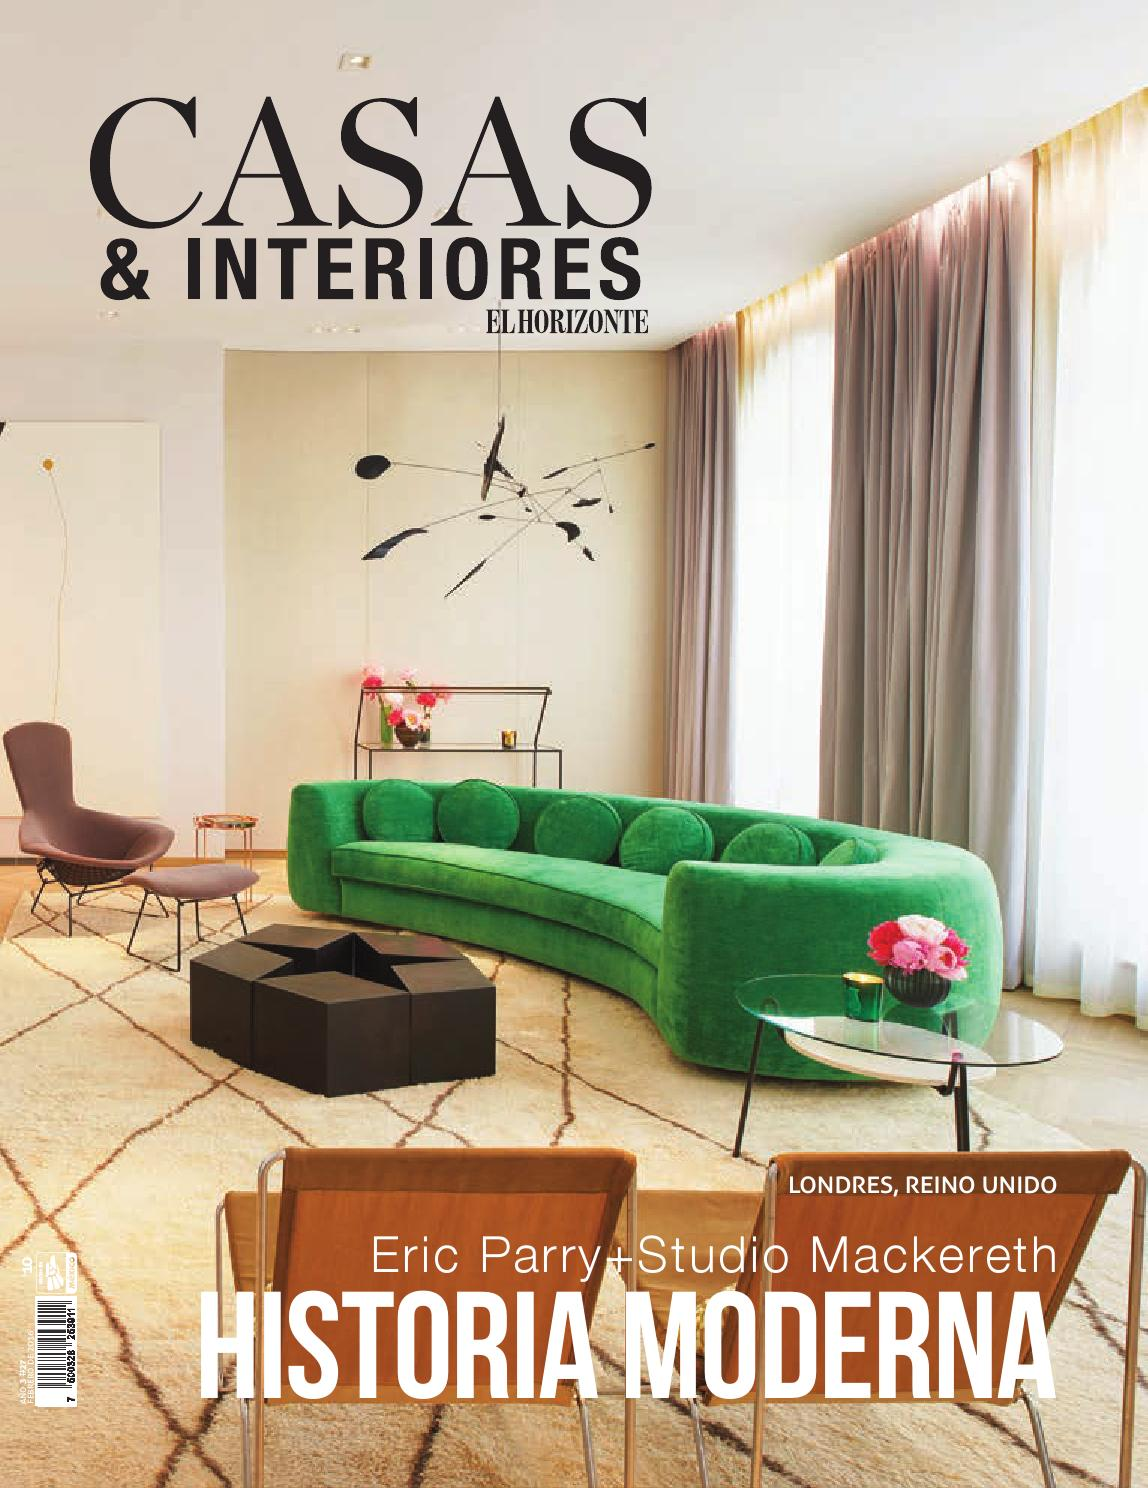 Casas & Interiores no27 by Valhe Hernandez - issuu